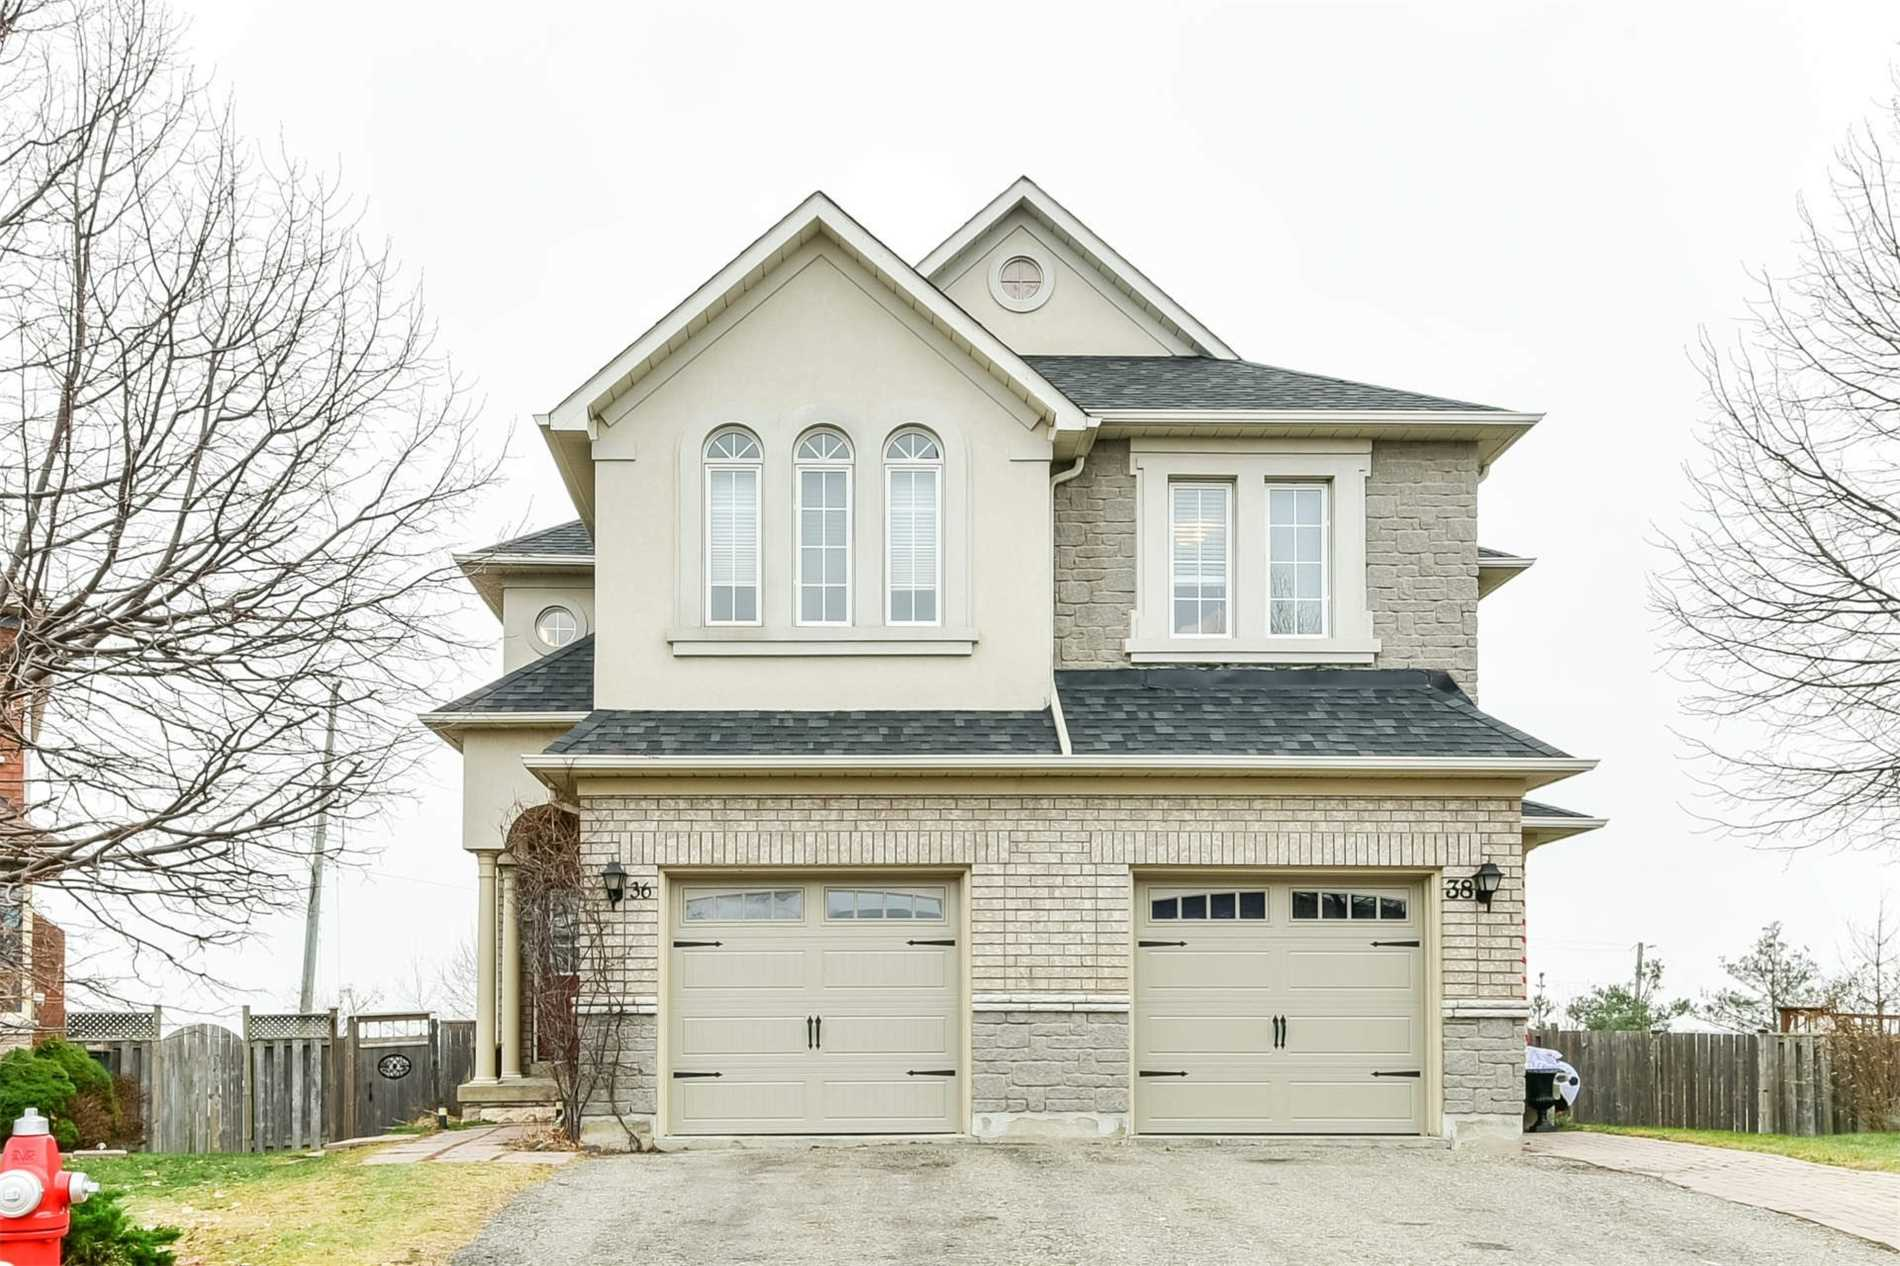 House for sale at 36 Hesketh Court Caledon Ontario - MLS: W4320746